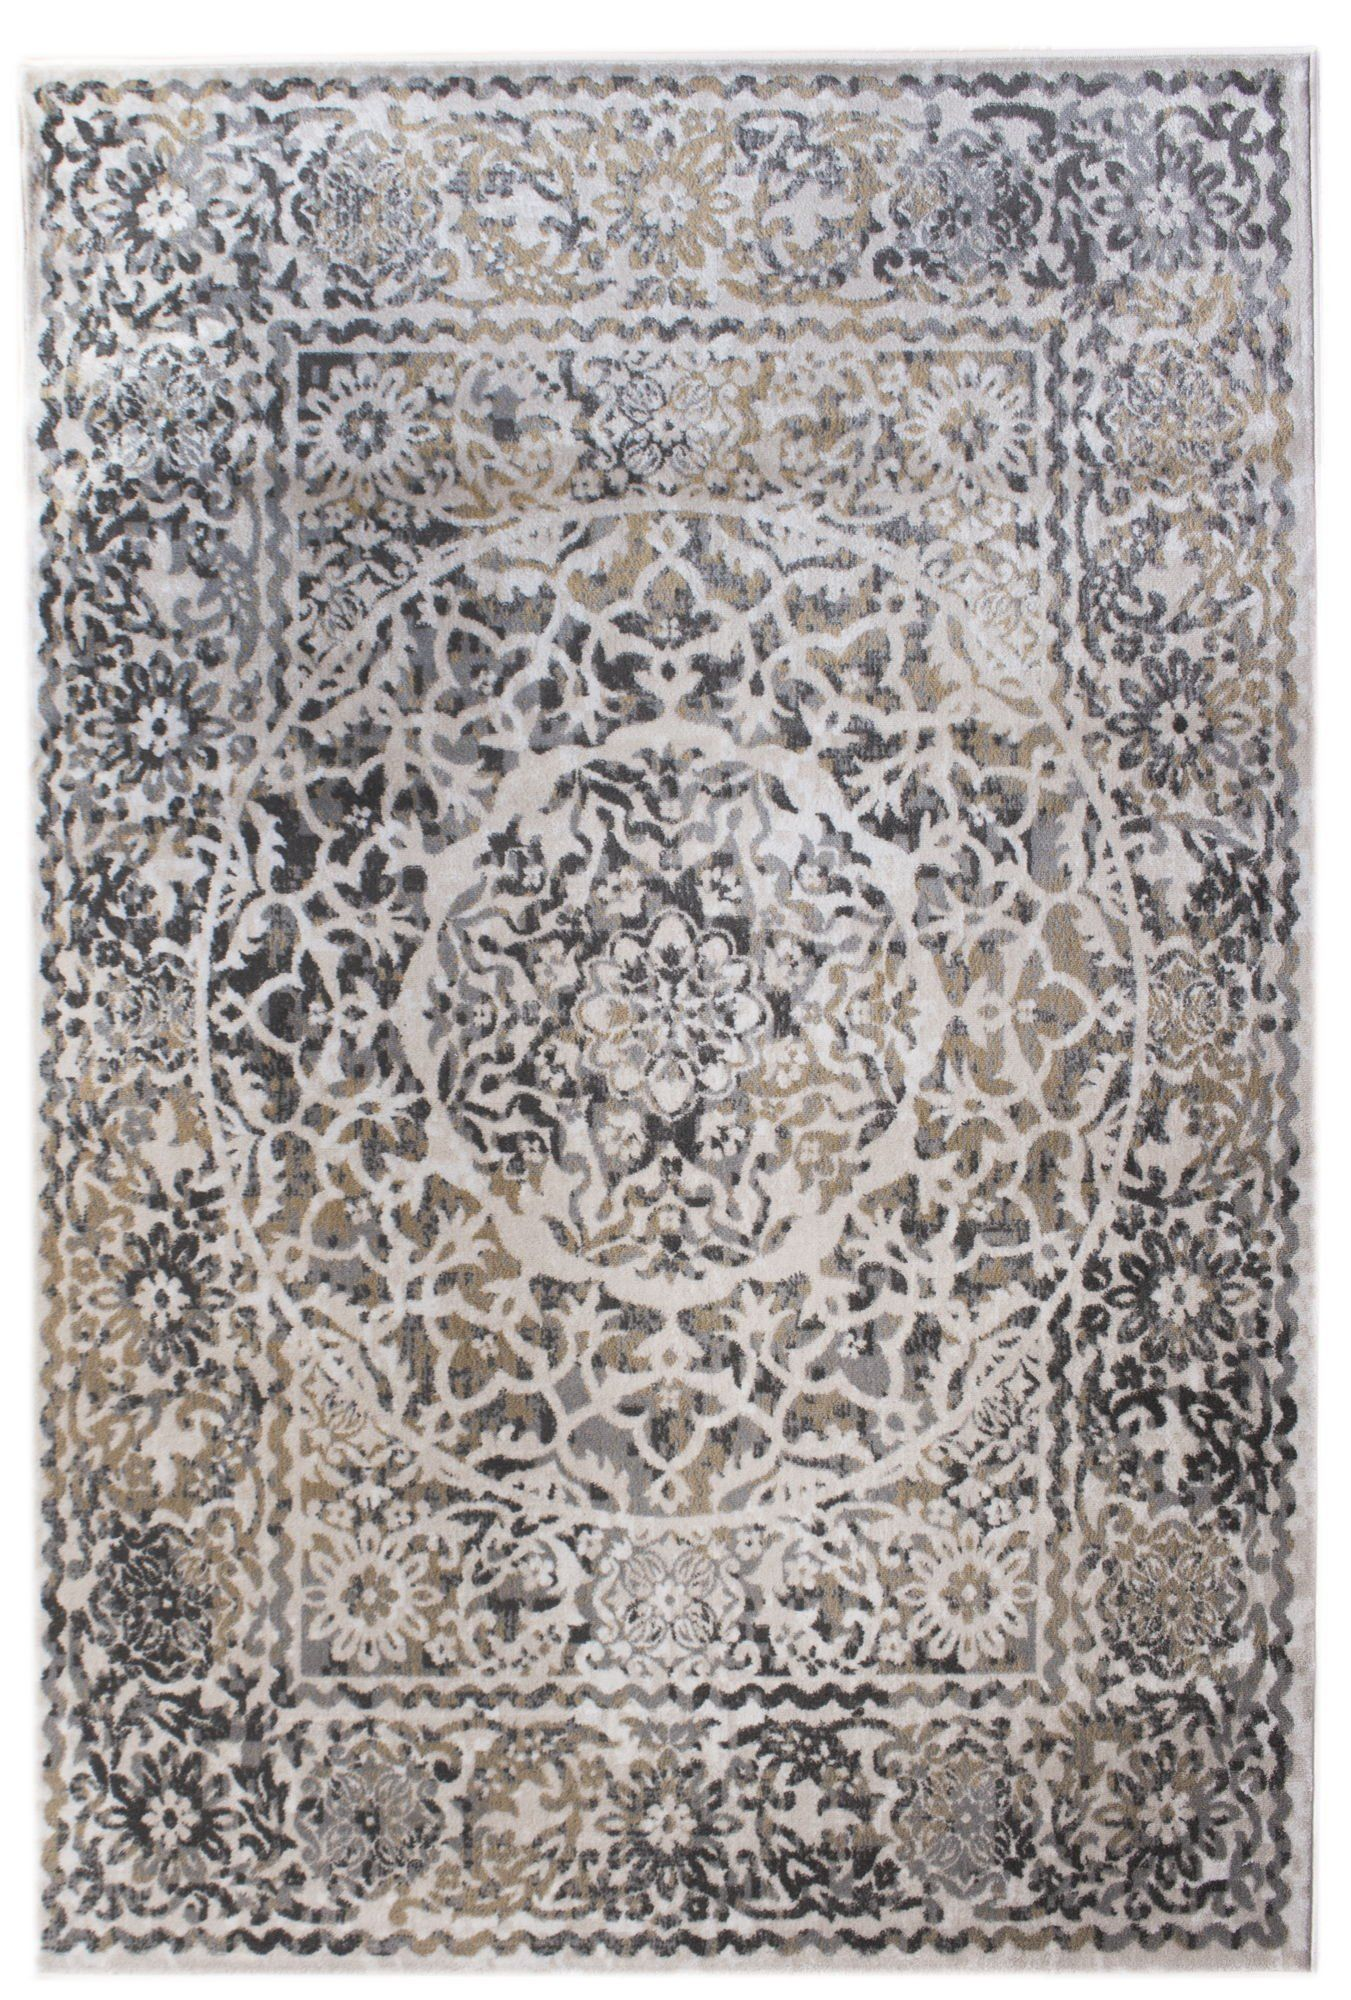 Transitonal Neutral Vintage Distressed Border Rugs 2x8 Runner Trendy Carpet 2 Feet 7